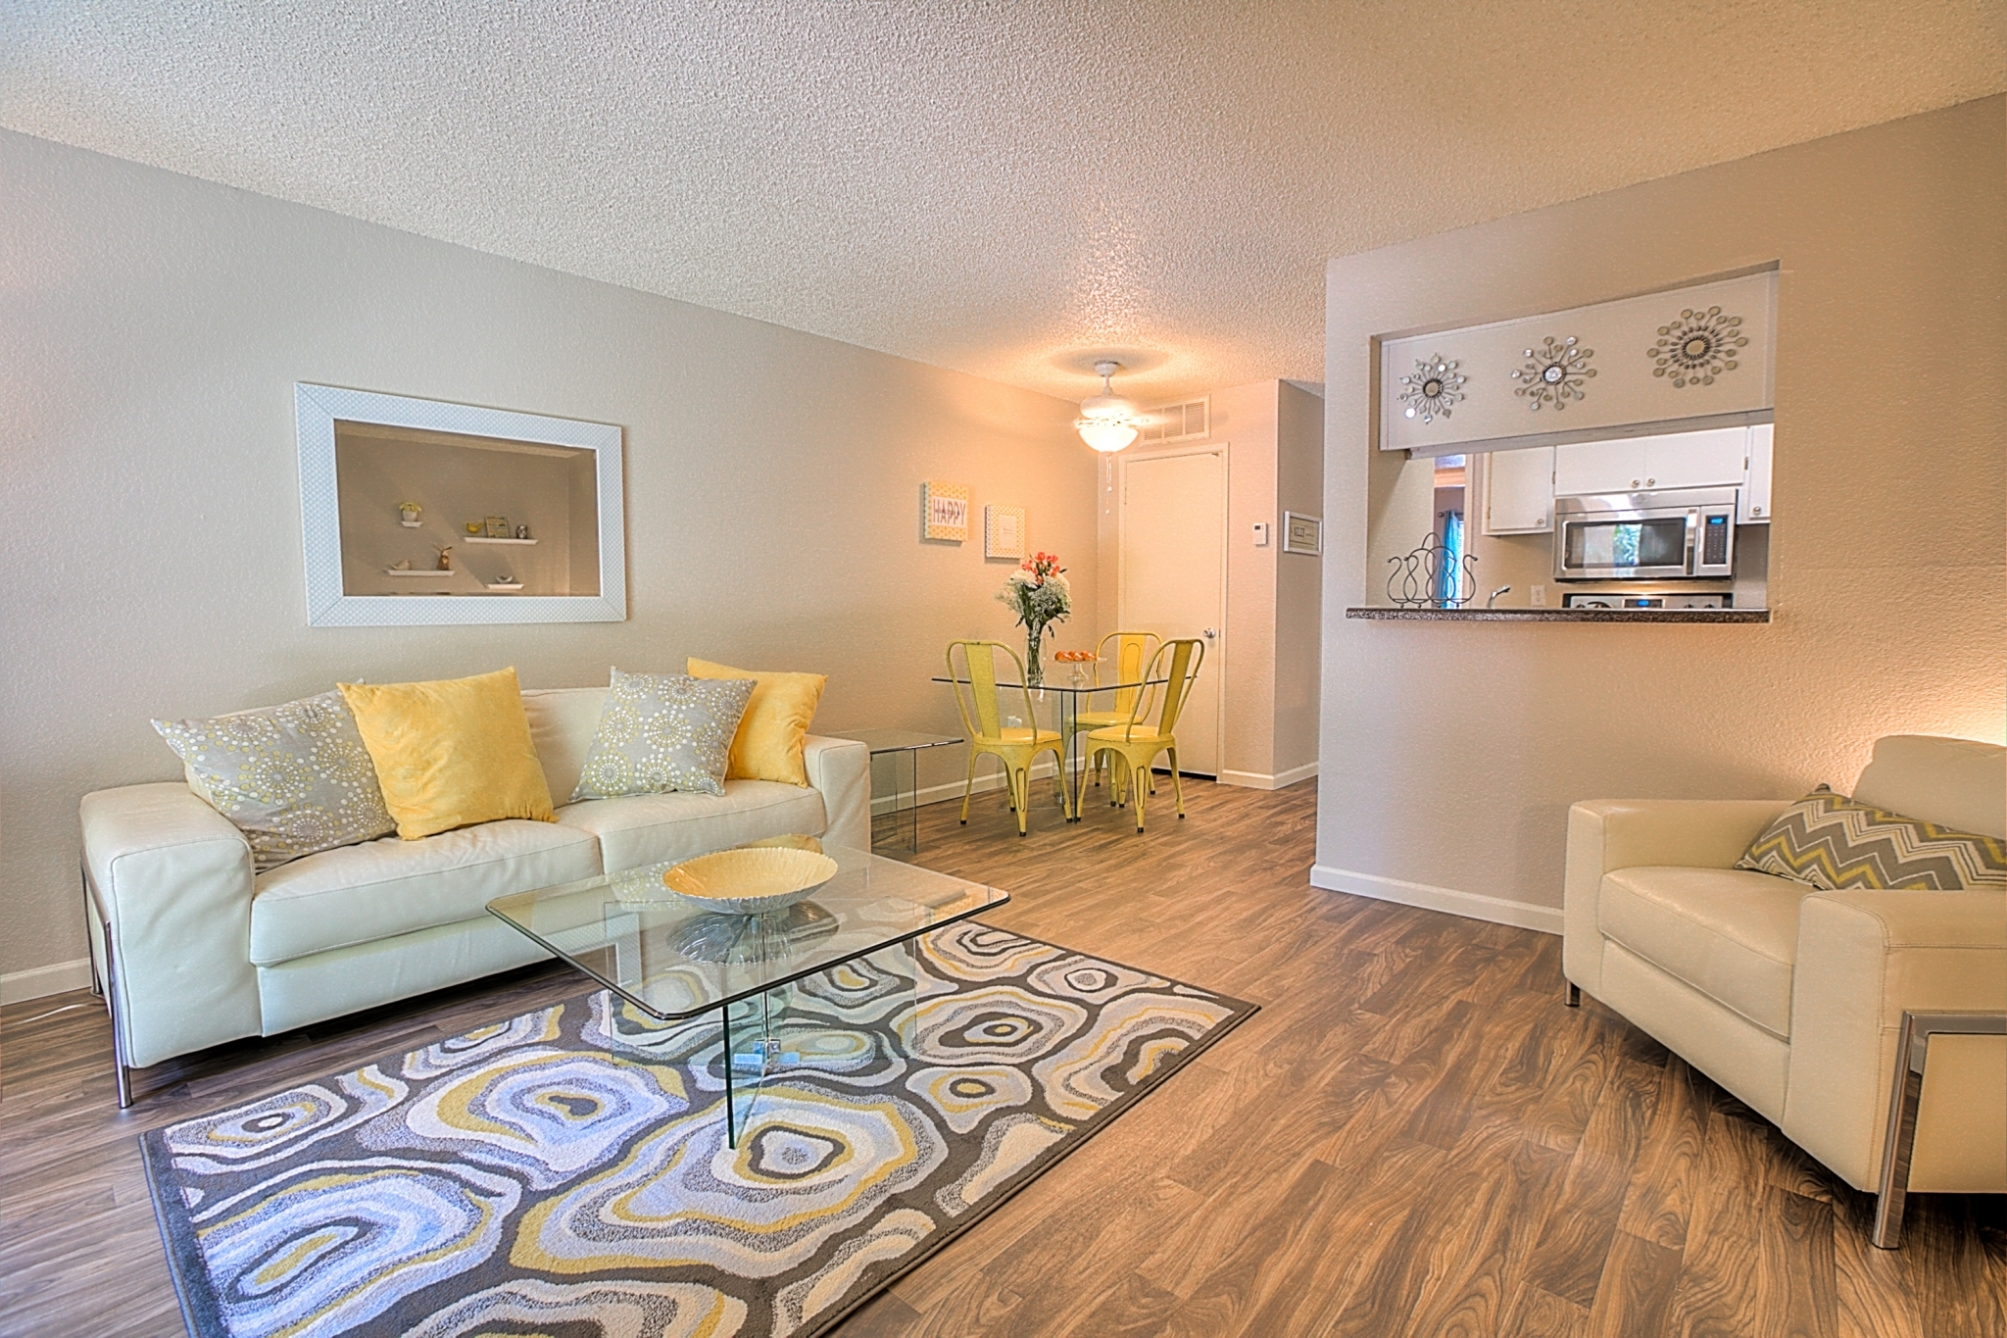 Luxurious Living Room With Modern Amenities at Eagle Pointe Apartments, 4401 Morris Street NE